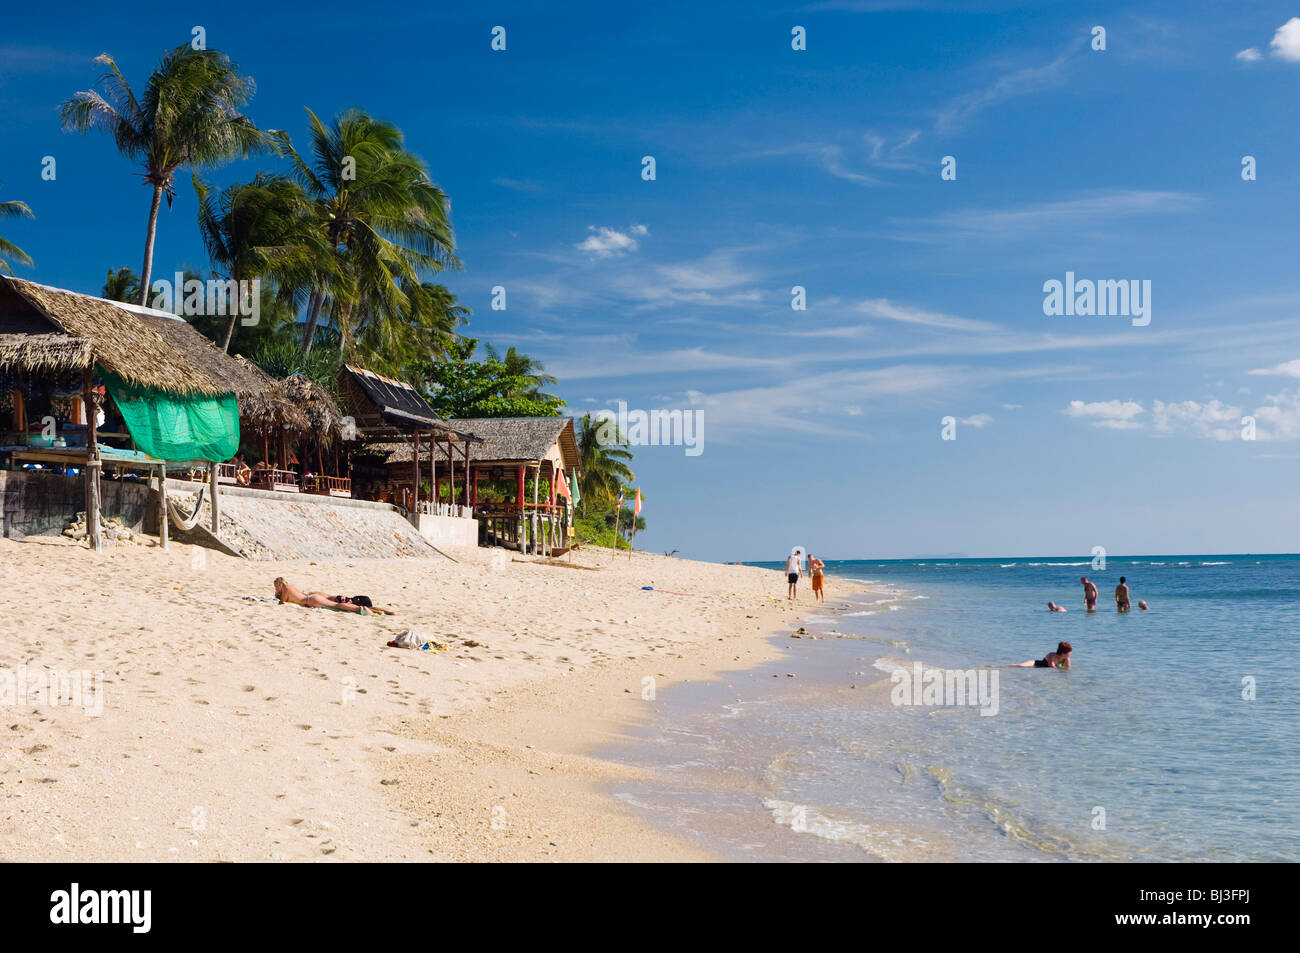 Klong Khong Beach Stock Photos Klong Khong Beach Stock Images Alamy